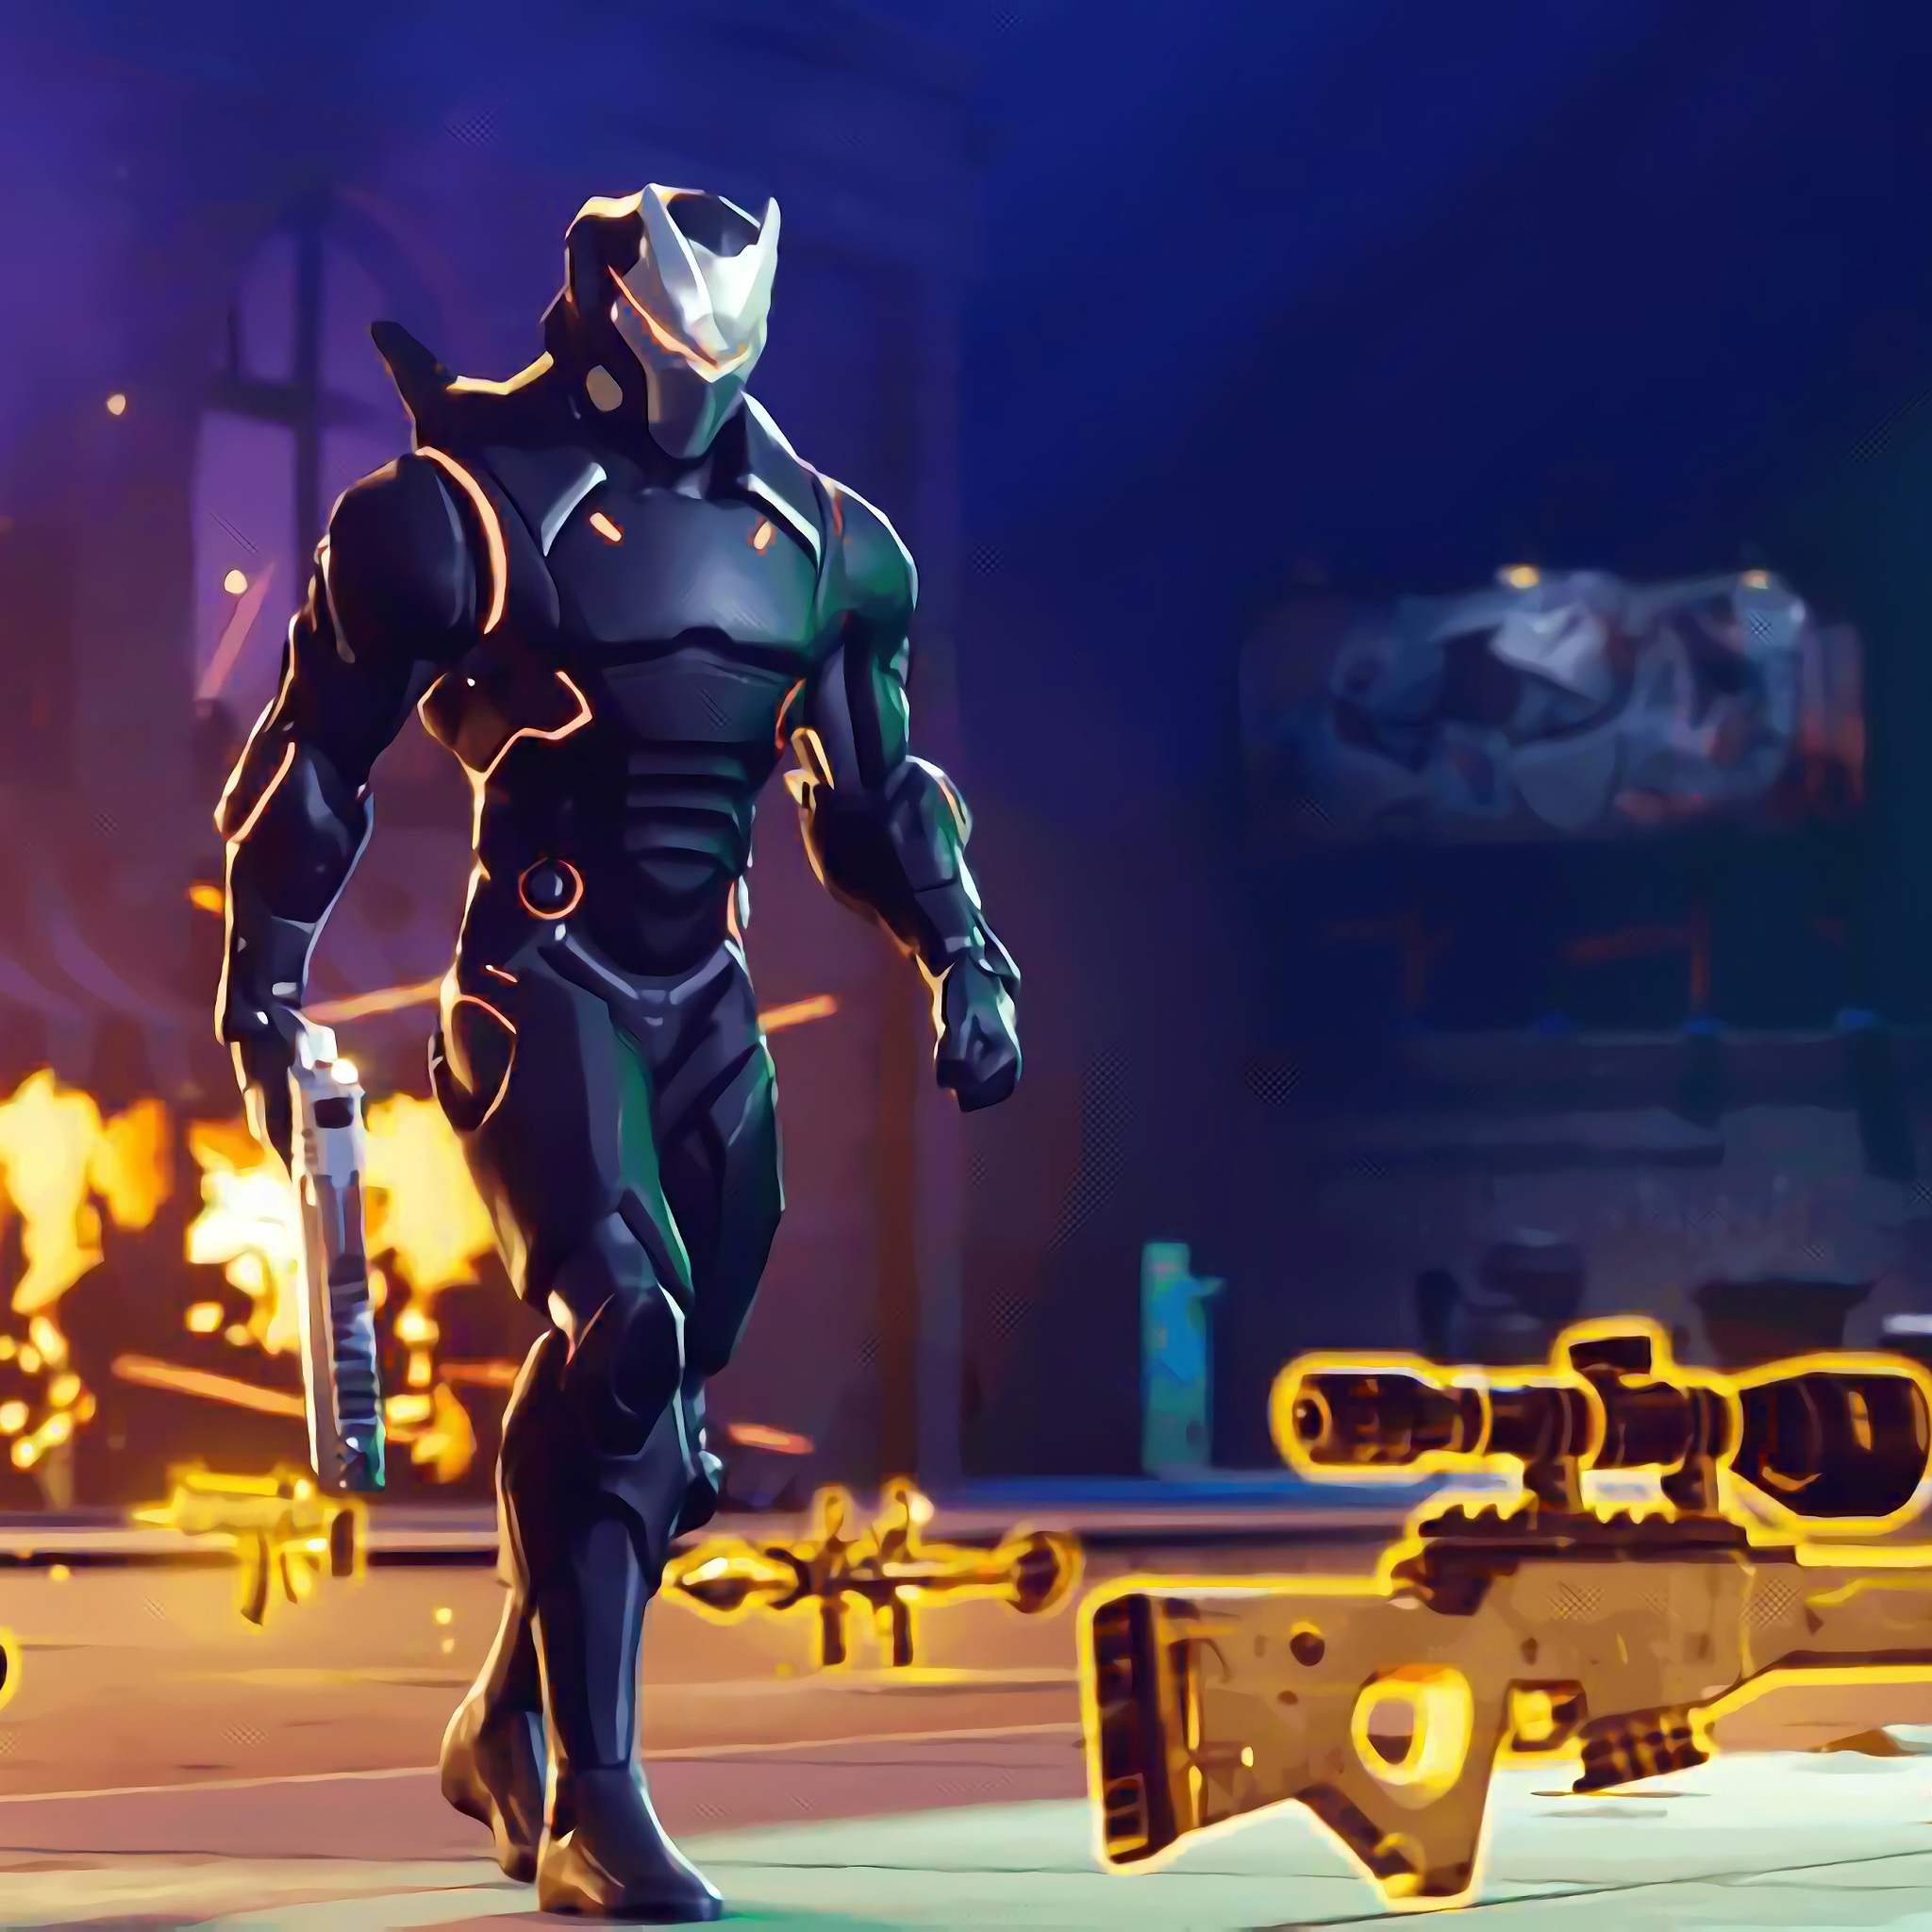 fortnite-season-5-omega-8y.jpg